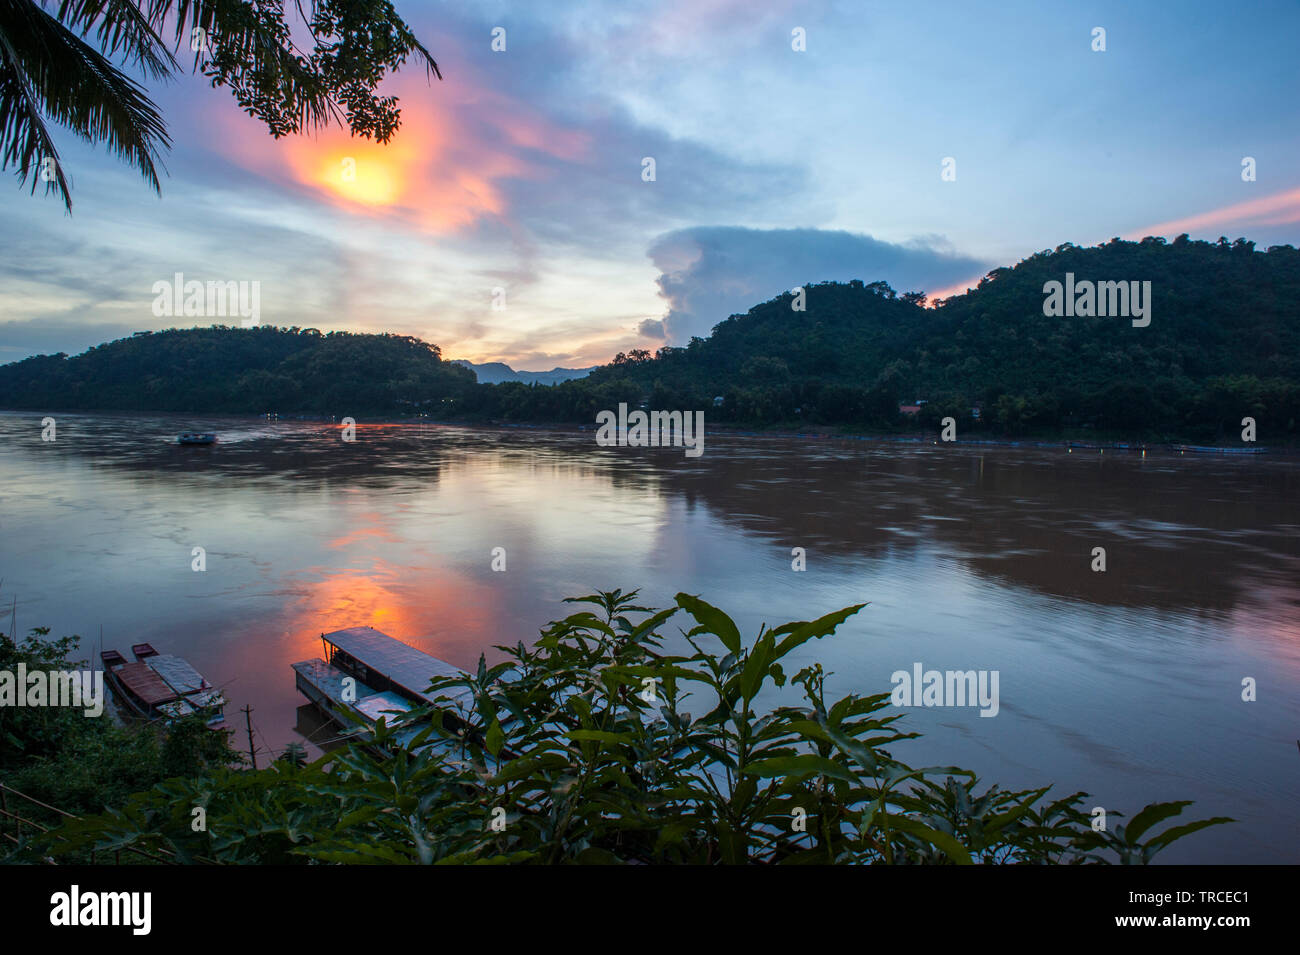 Sunset over the Mekong River from one of the tourist bars along the waterfront in Luang Prabang, Lao PDR (Laos). - Stock Image